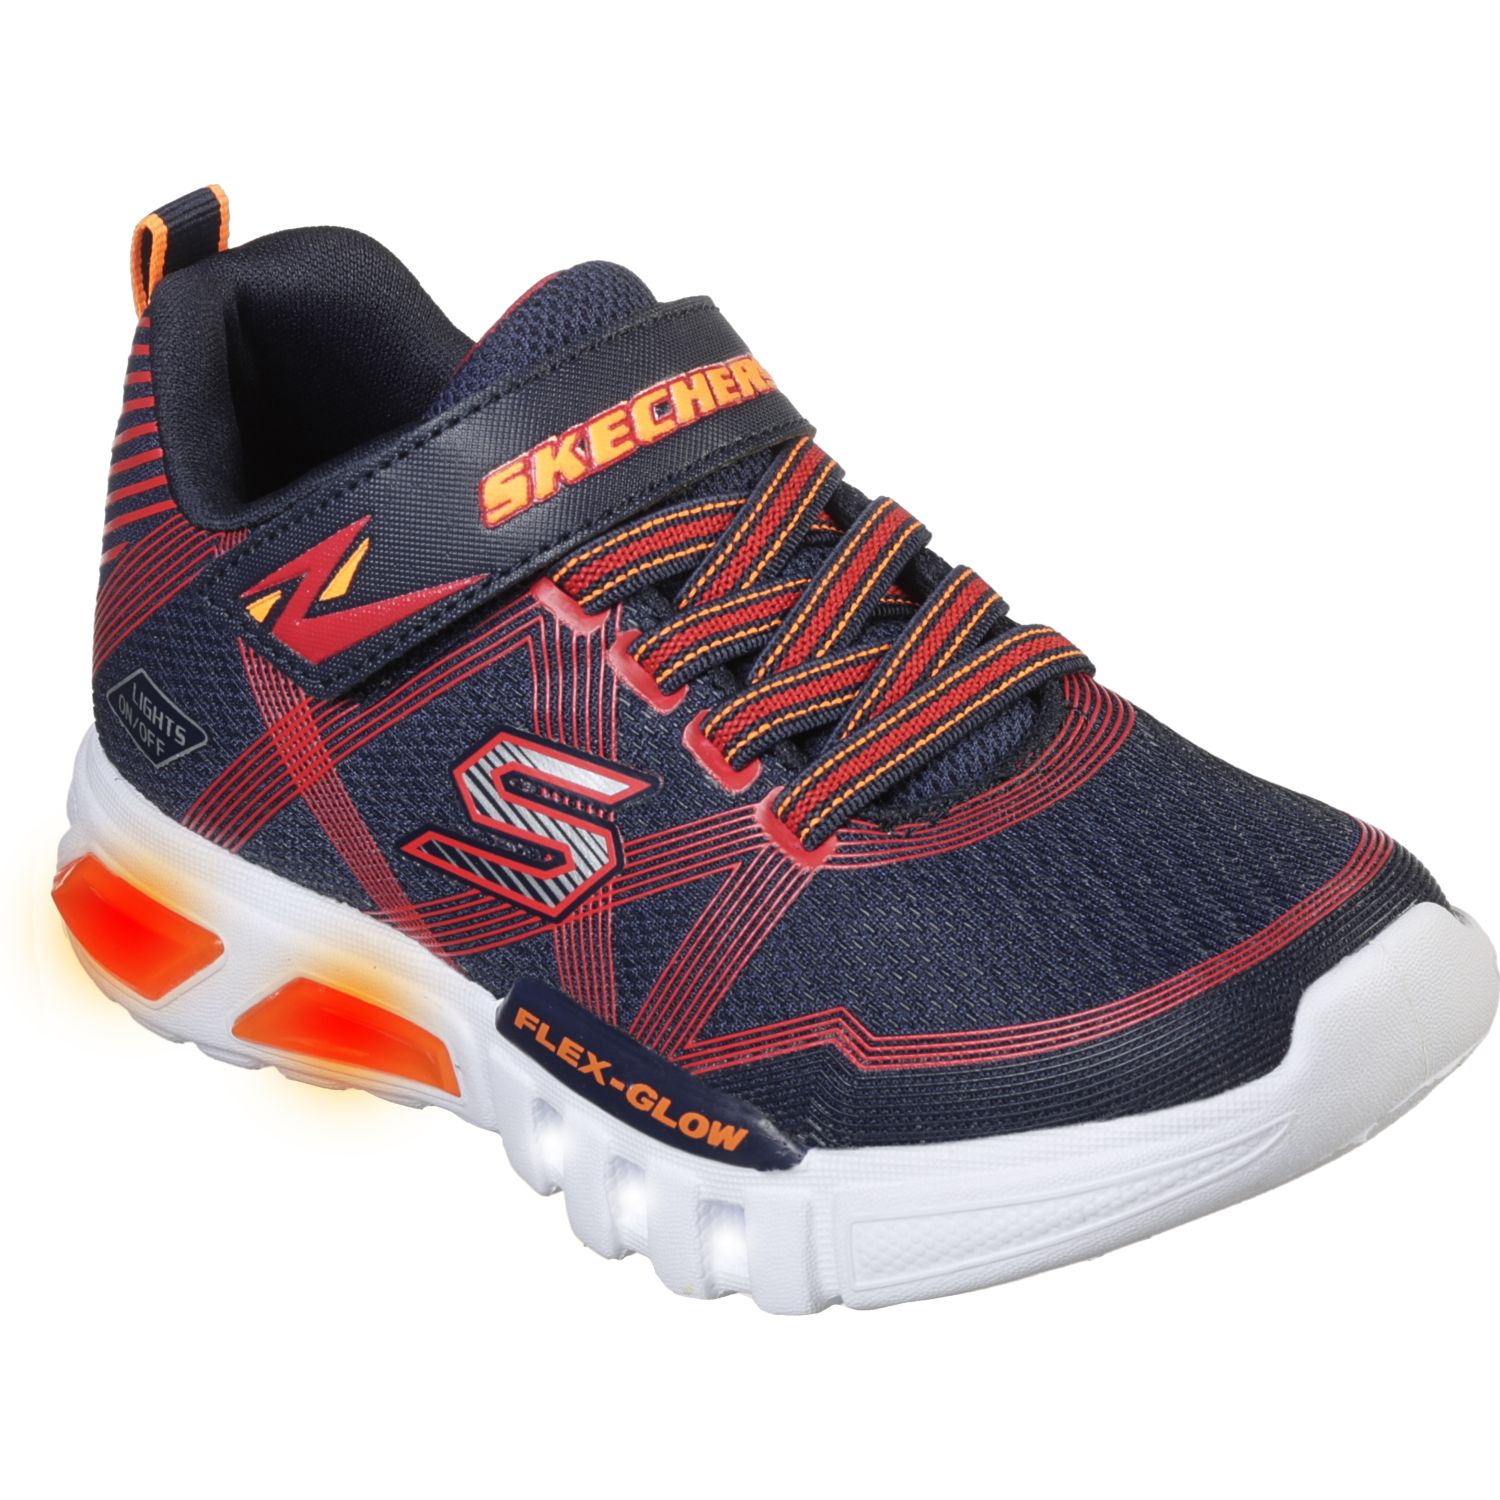 Skechers FLEX-GLOW Azul / rojo Walking